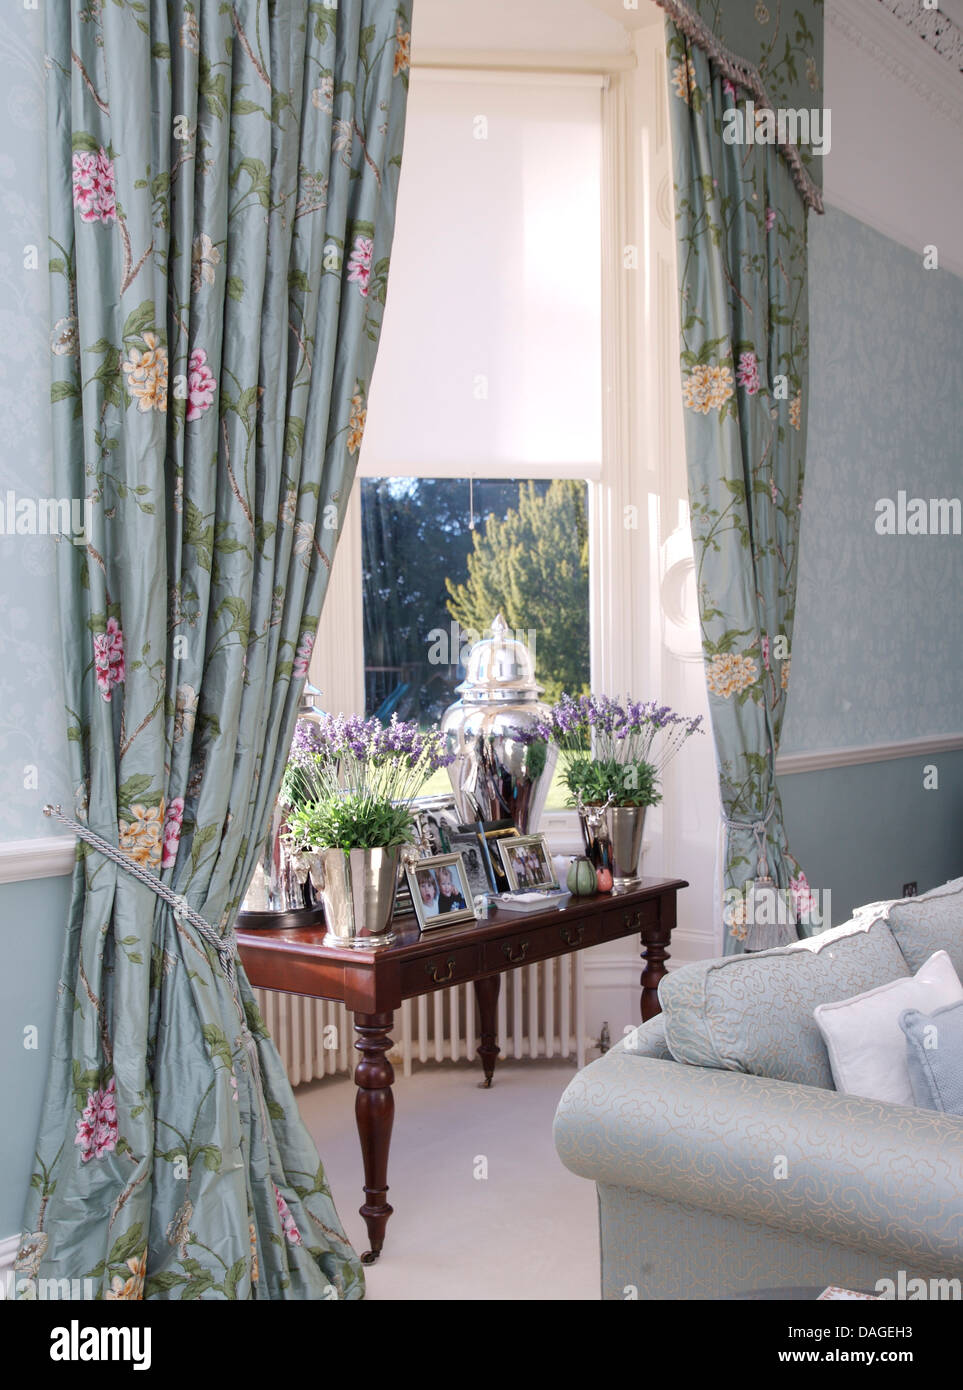 Pots Of Lavender On Table In Window With Pale Blue Floral Curtains And  White Blinds In Pale Blue Living Room  Blue Floral Curtains